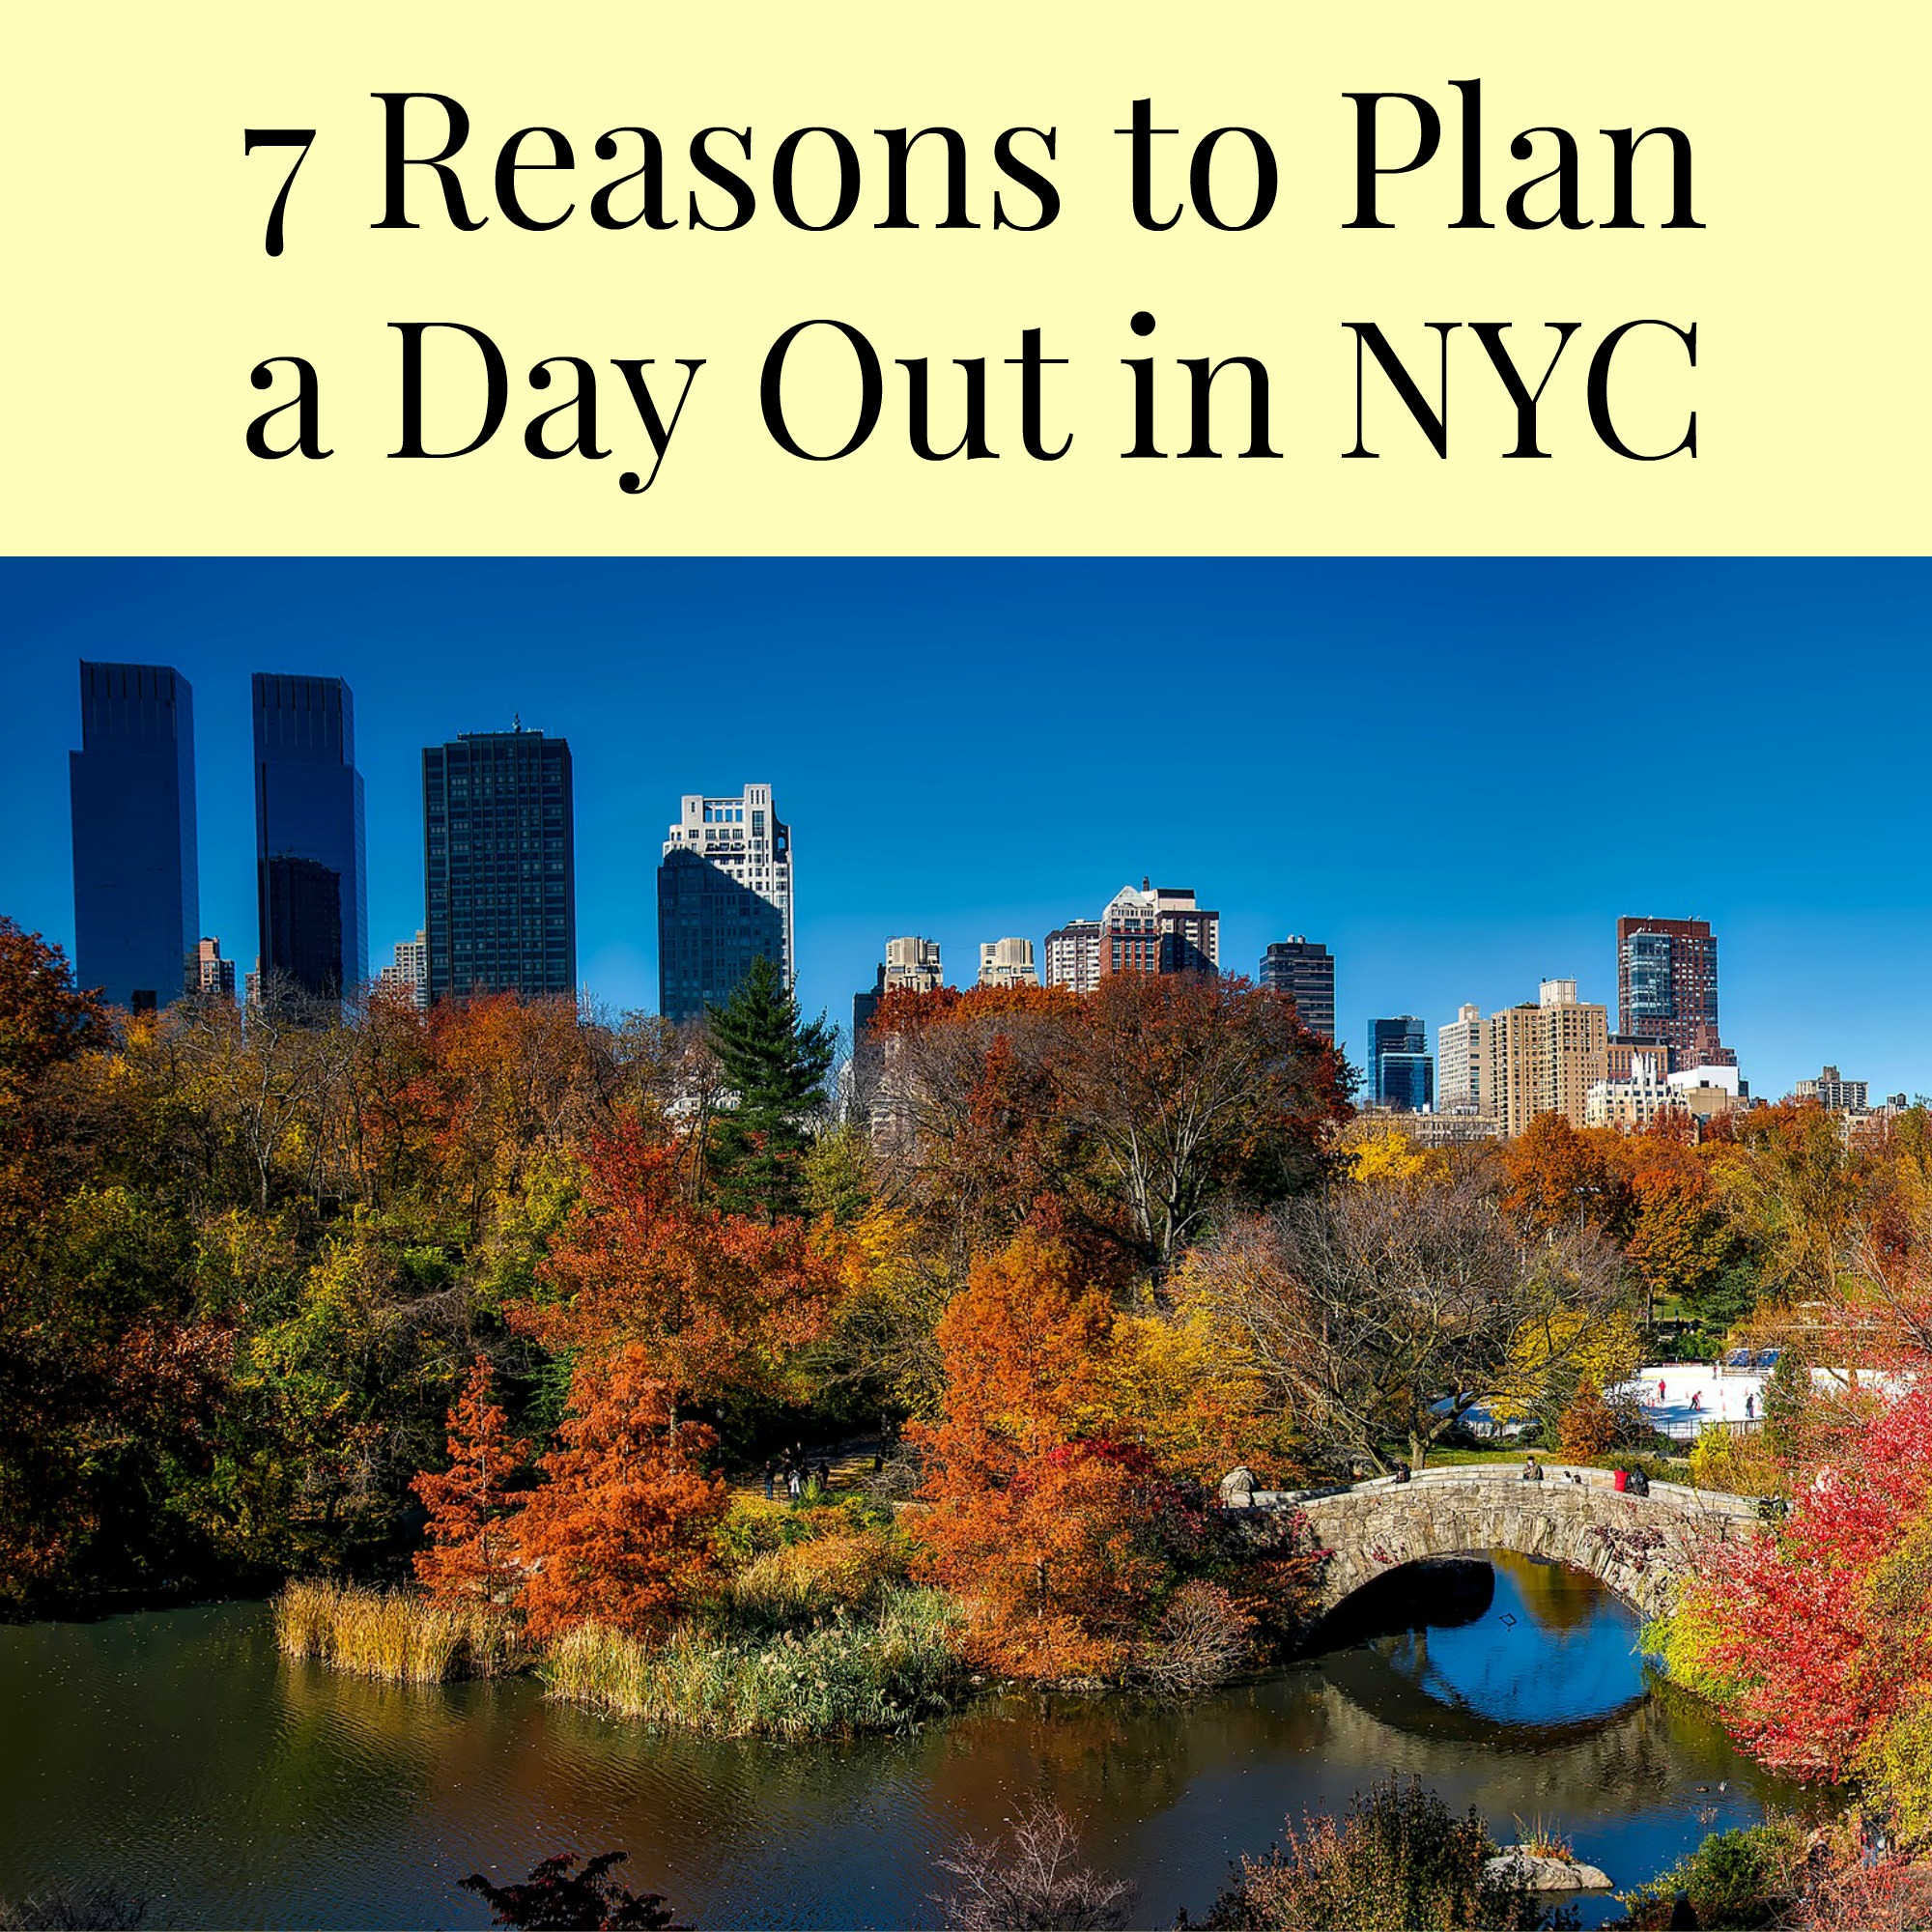 7 Reasons To Plan A Day Out in NYC